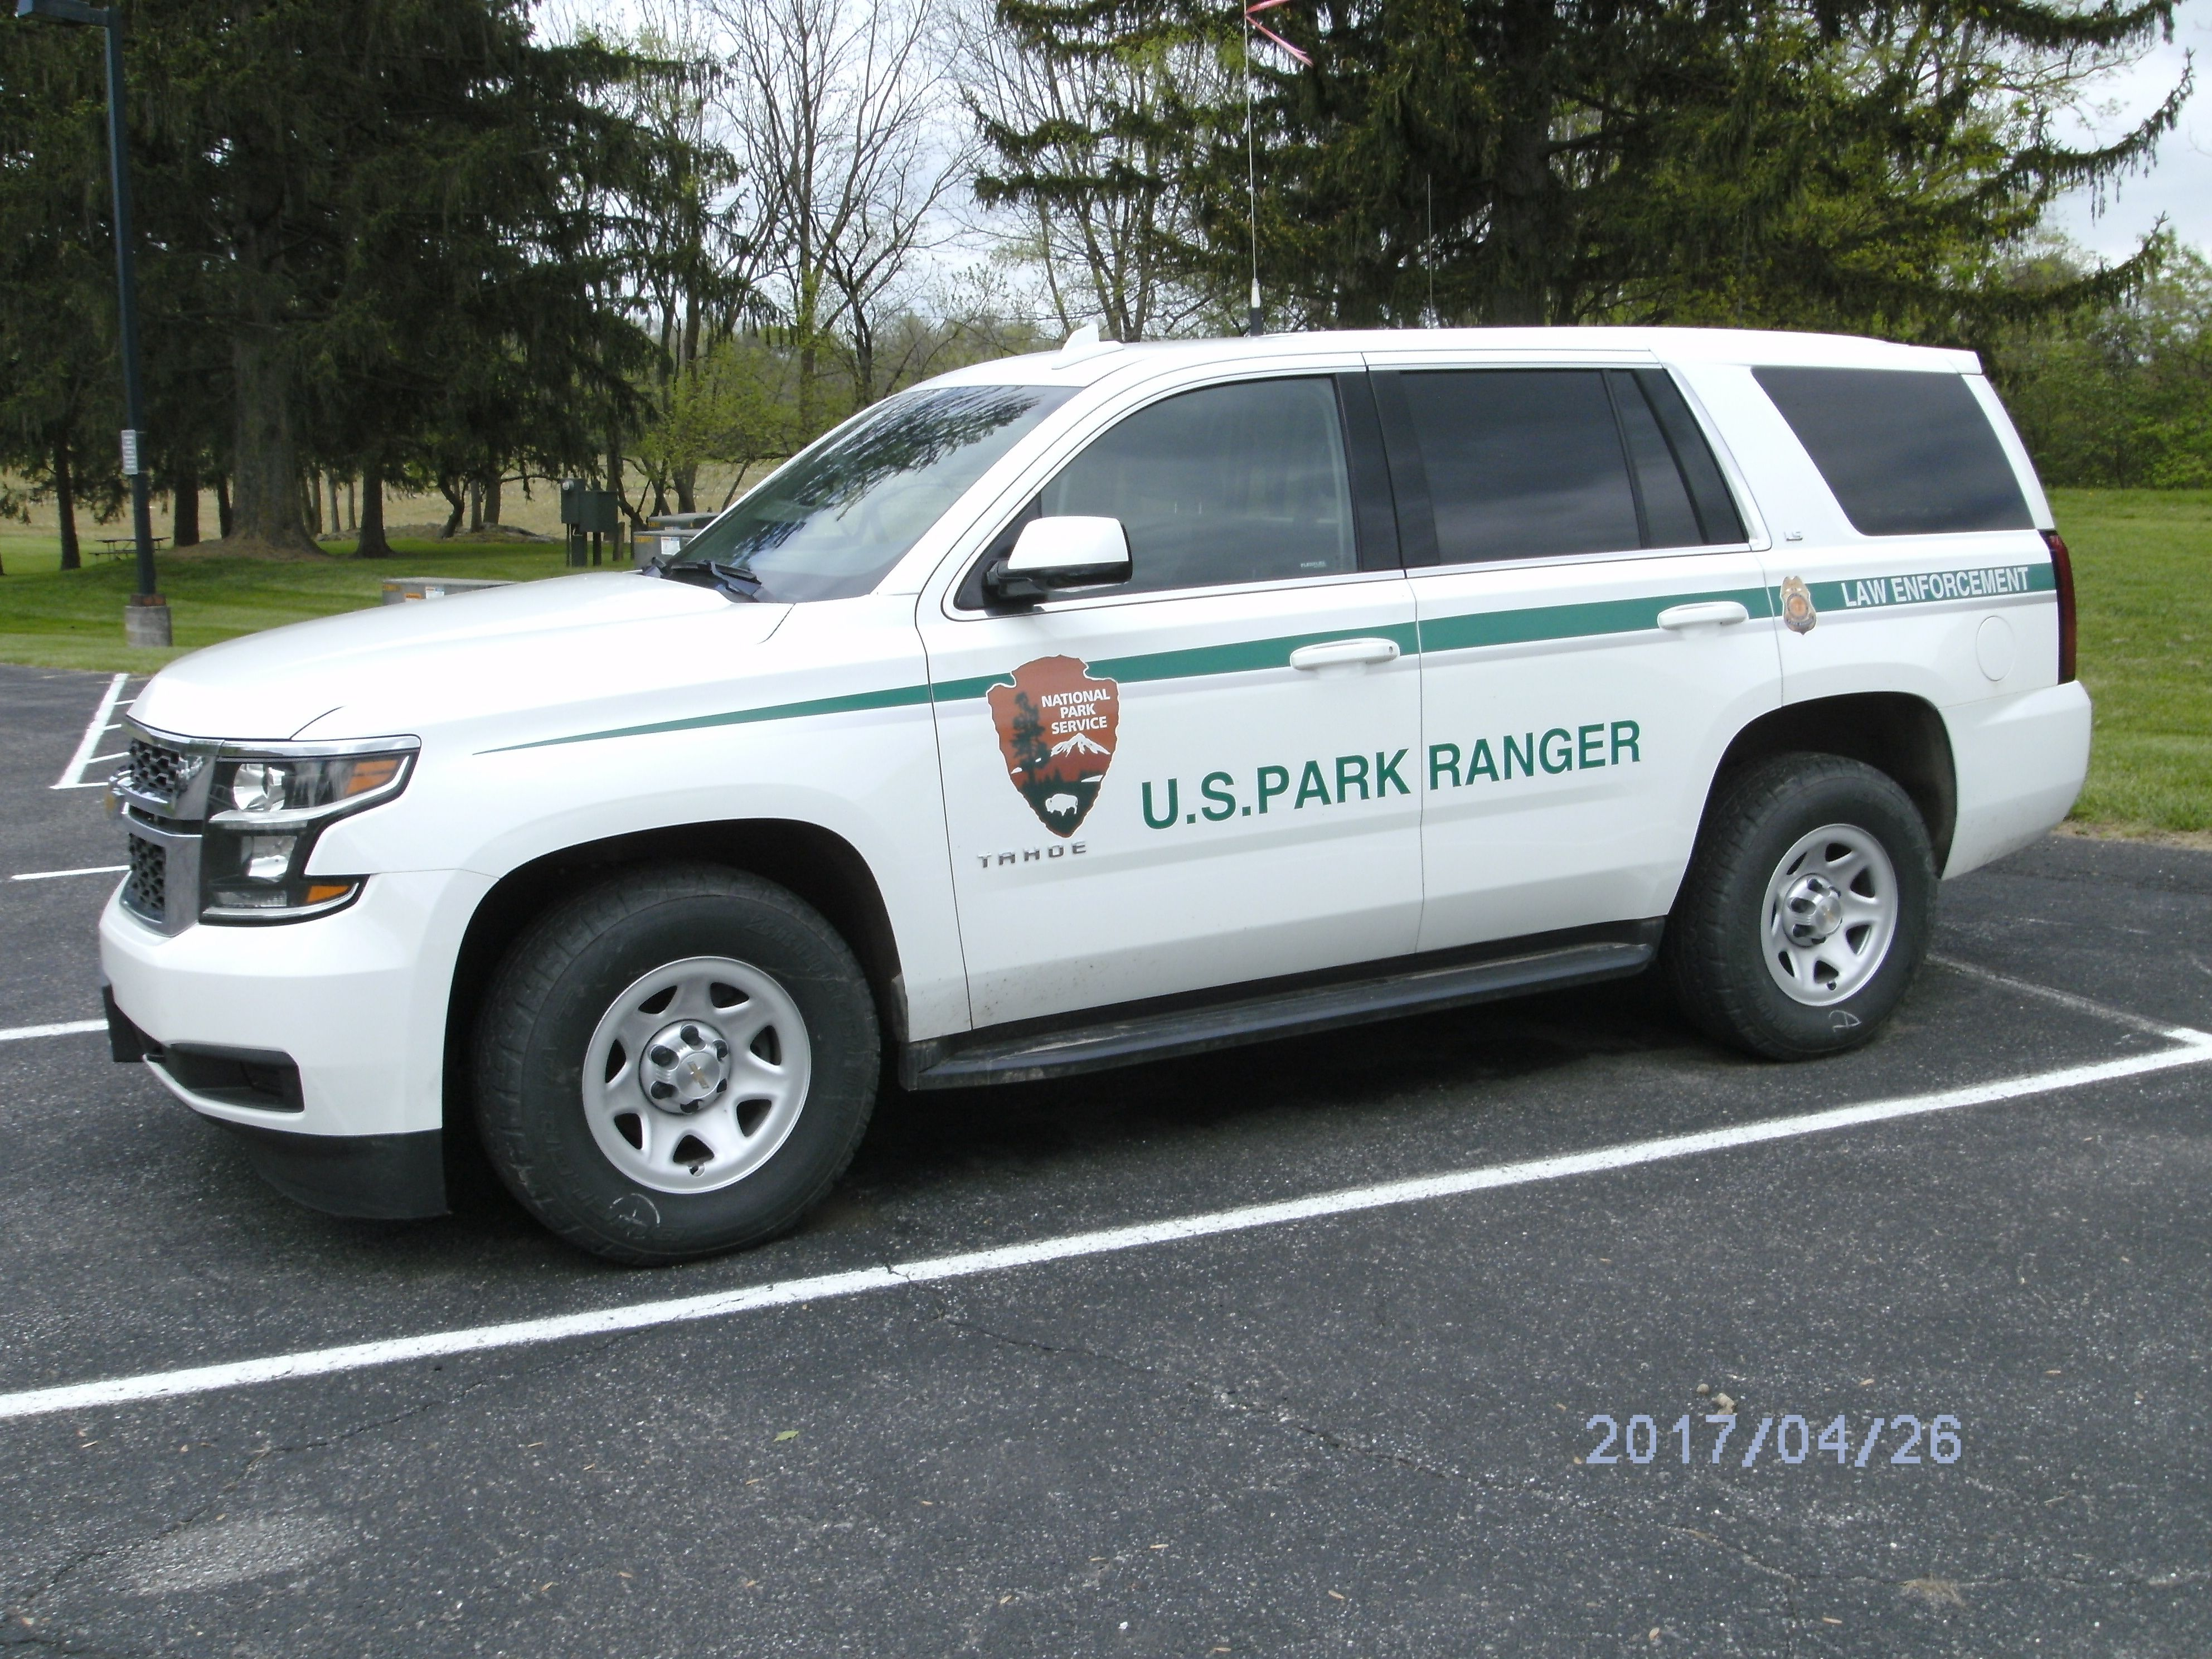 National Park Service C O Canal Nps Park Hagerstown Maryland Headquarters Chevy Tahoe Law Enforcement Vehicle Emergency Vehicles Law Enforcement Us Park